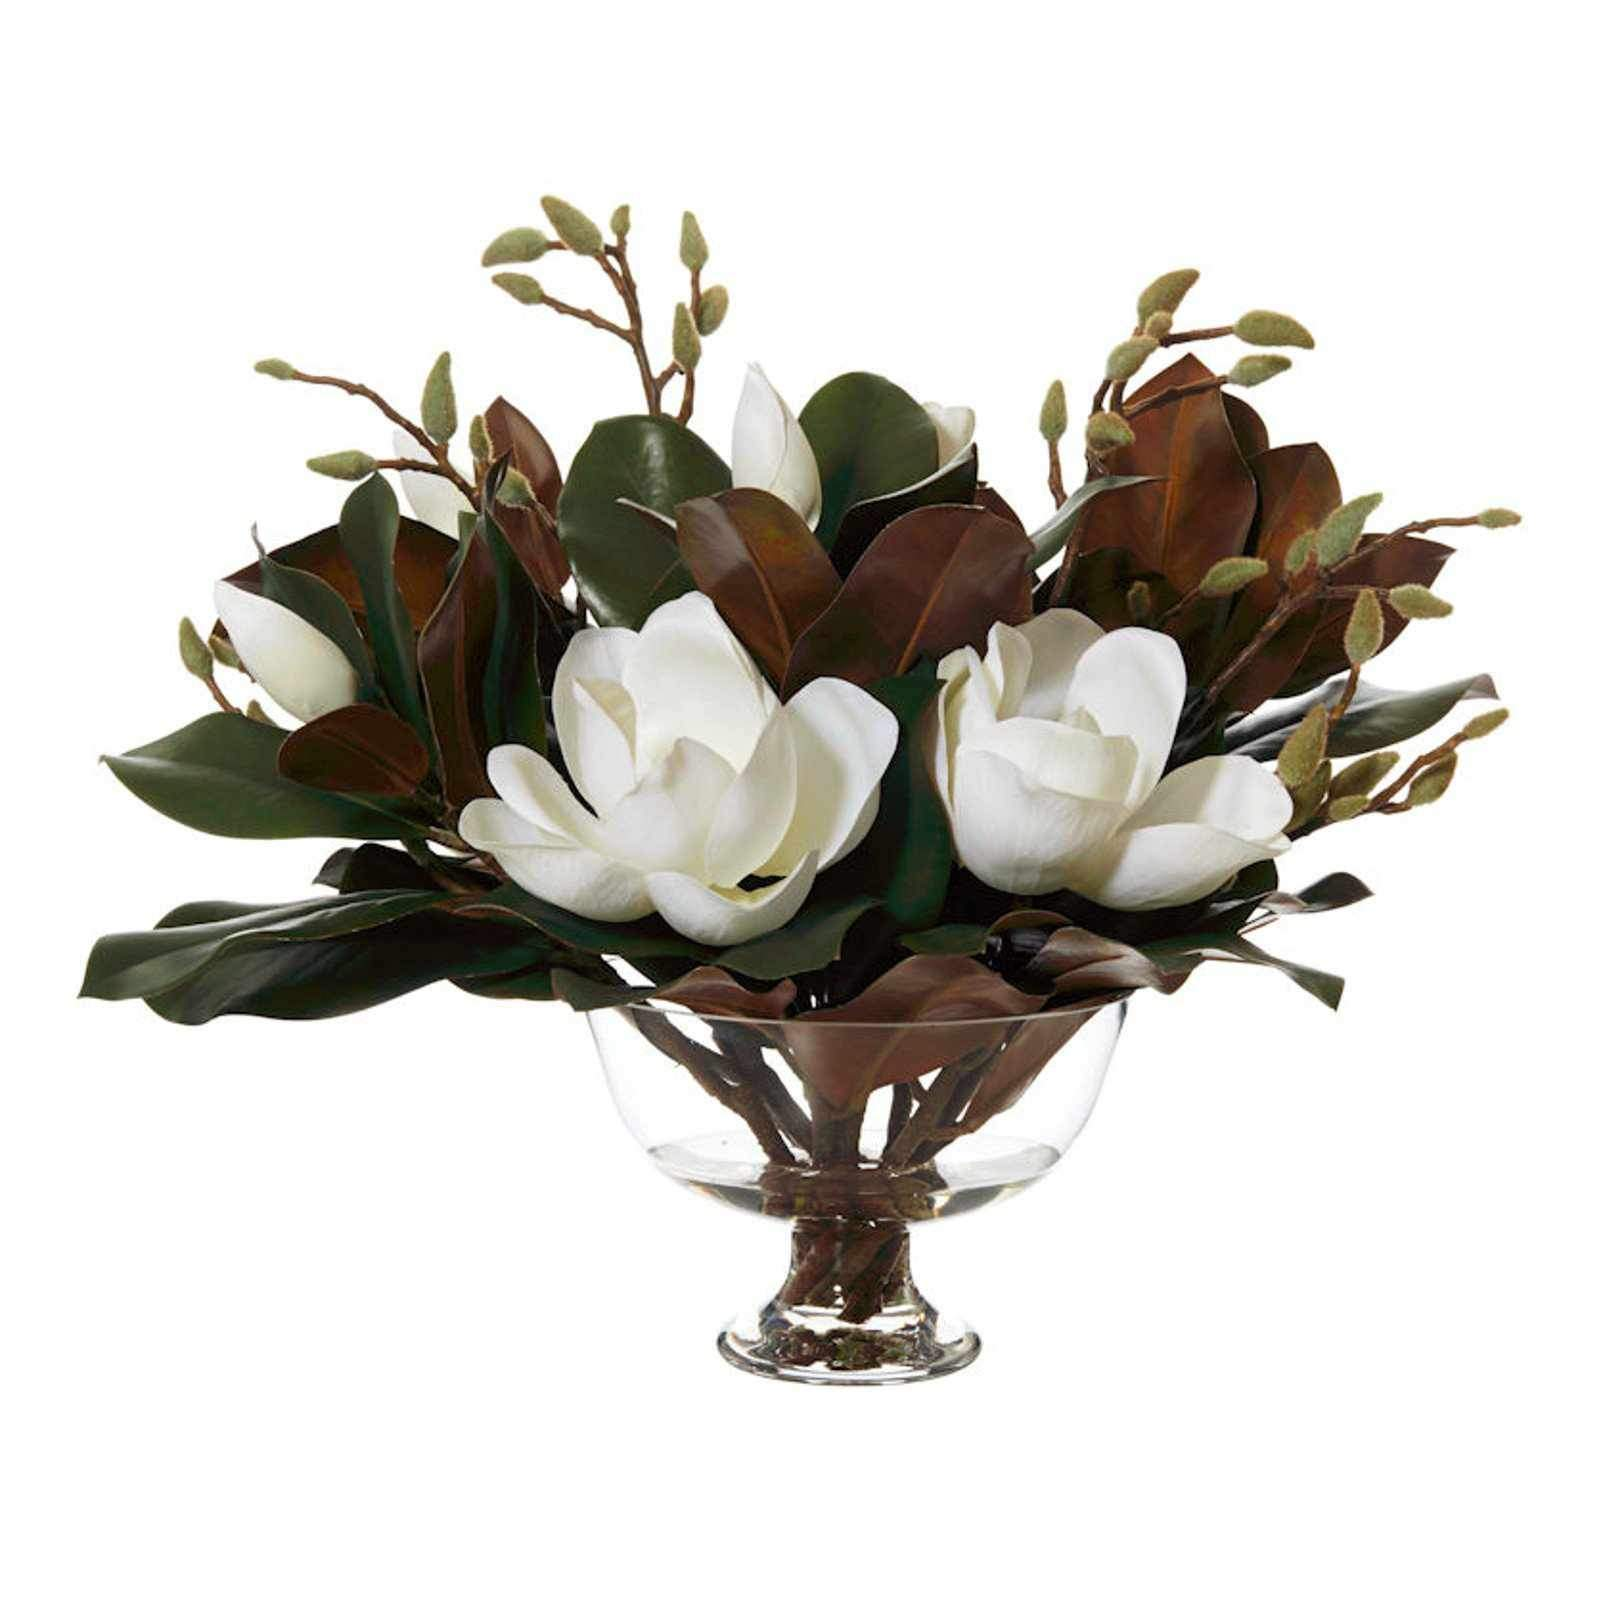 Magnolia Mix with Dahlia Bowl - Artificial Flower Arrangement-artificial flowers and plants-Chef's Quality Cookware